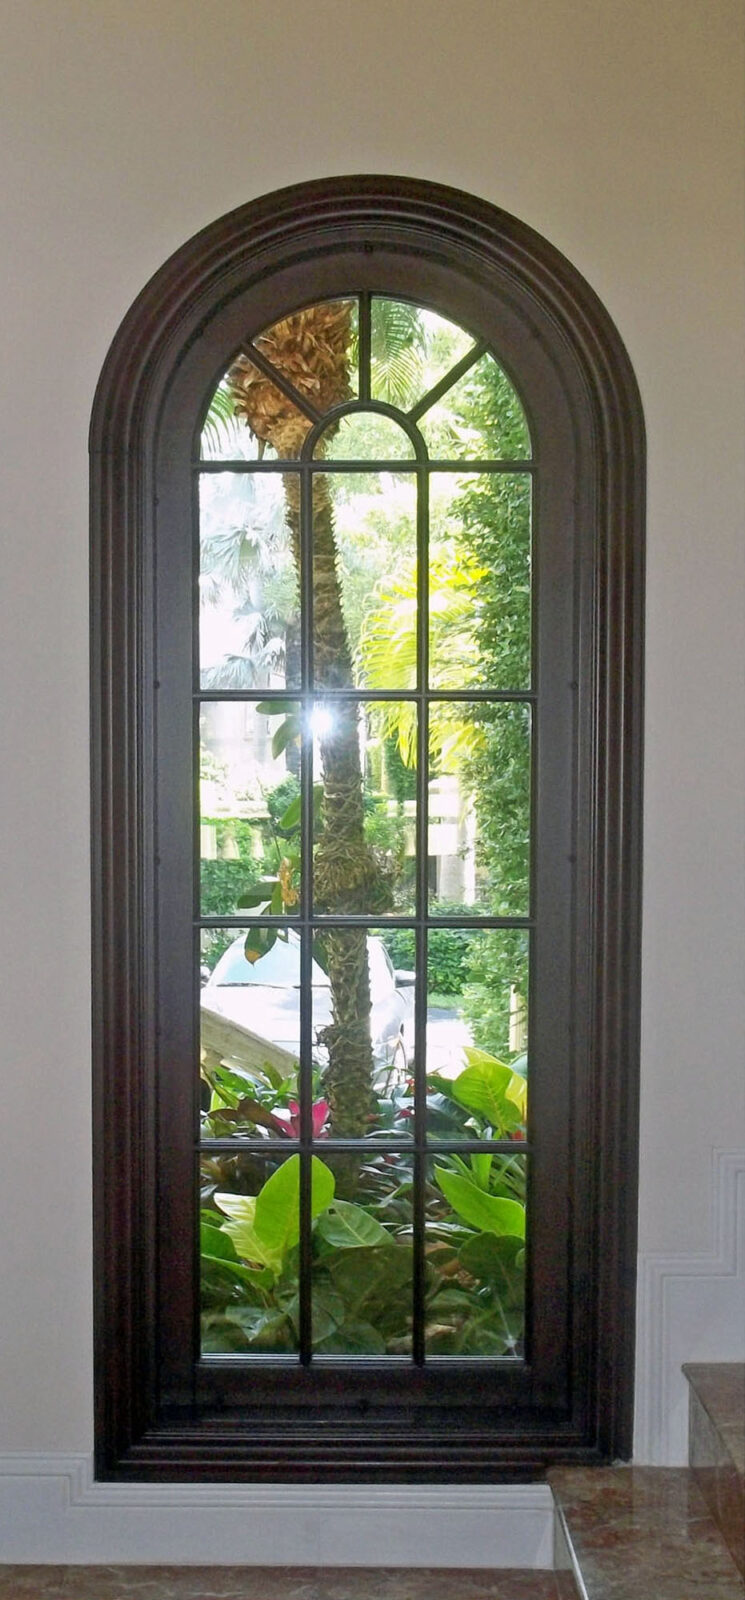 COCOPLUM MAHOGANY WINDOW